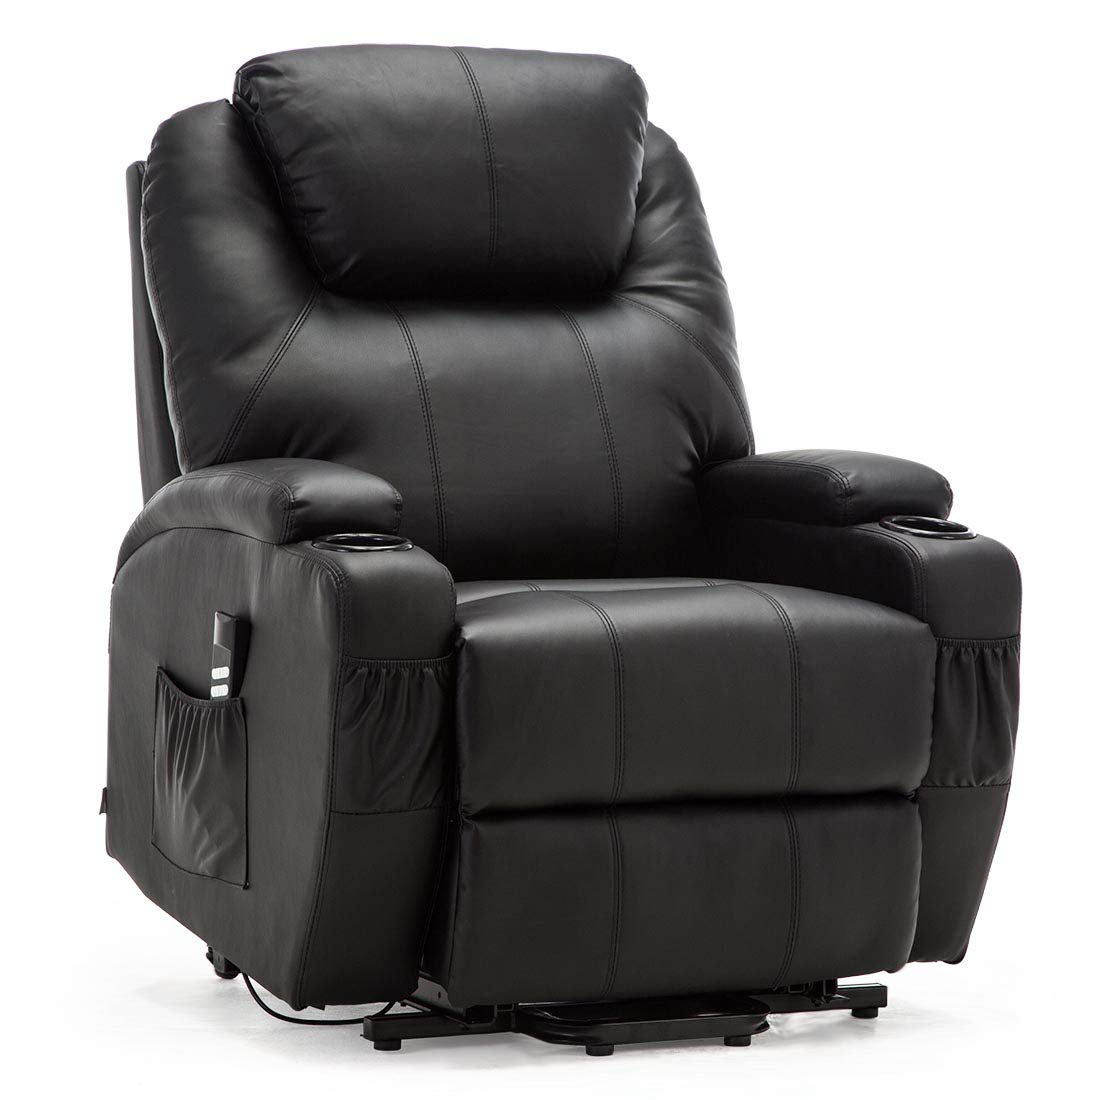 Black More4Homes CINEMO DUAL MOTOR ELECTRIC RISER RECLINER ARMCHAIR MOBILITY BONDED LEATHER MASSAGE HEATED CHAIR